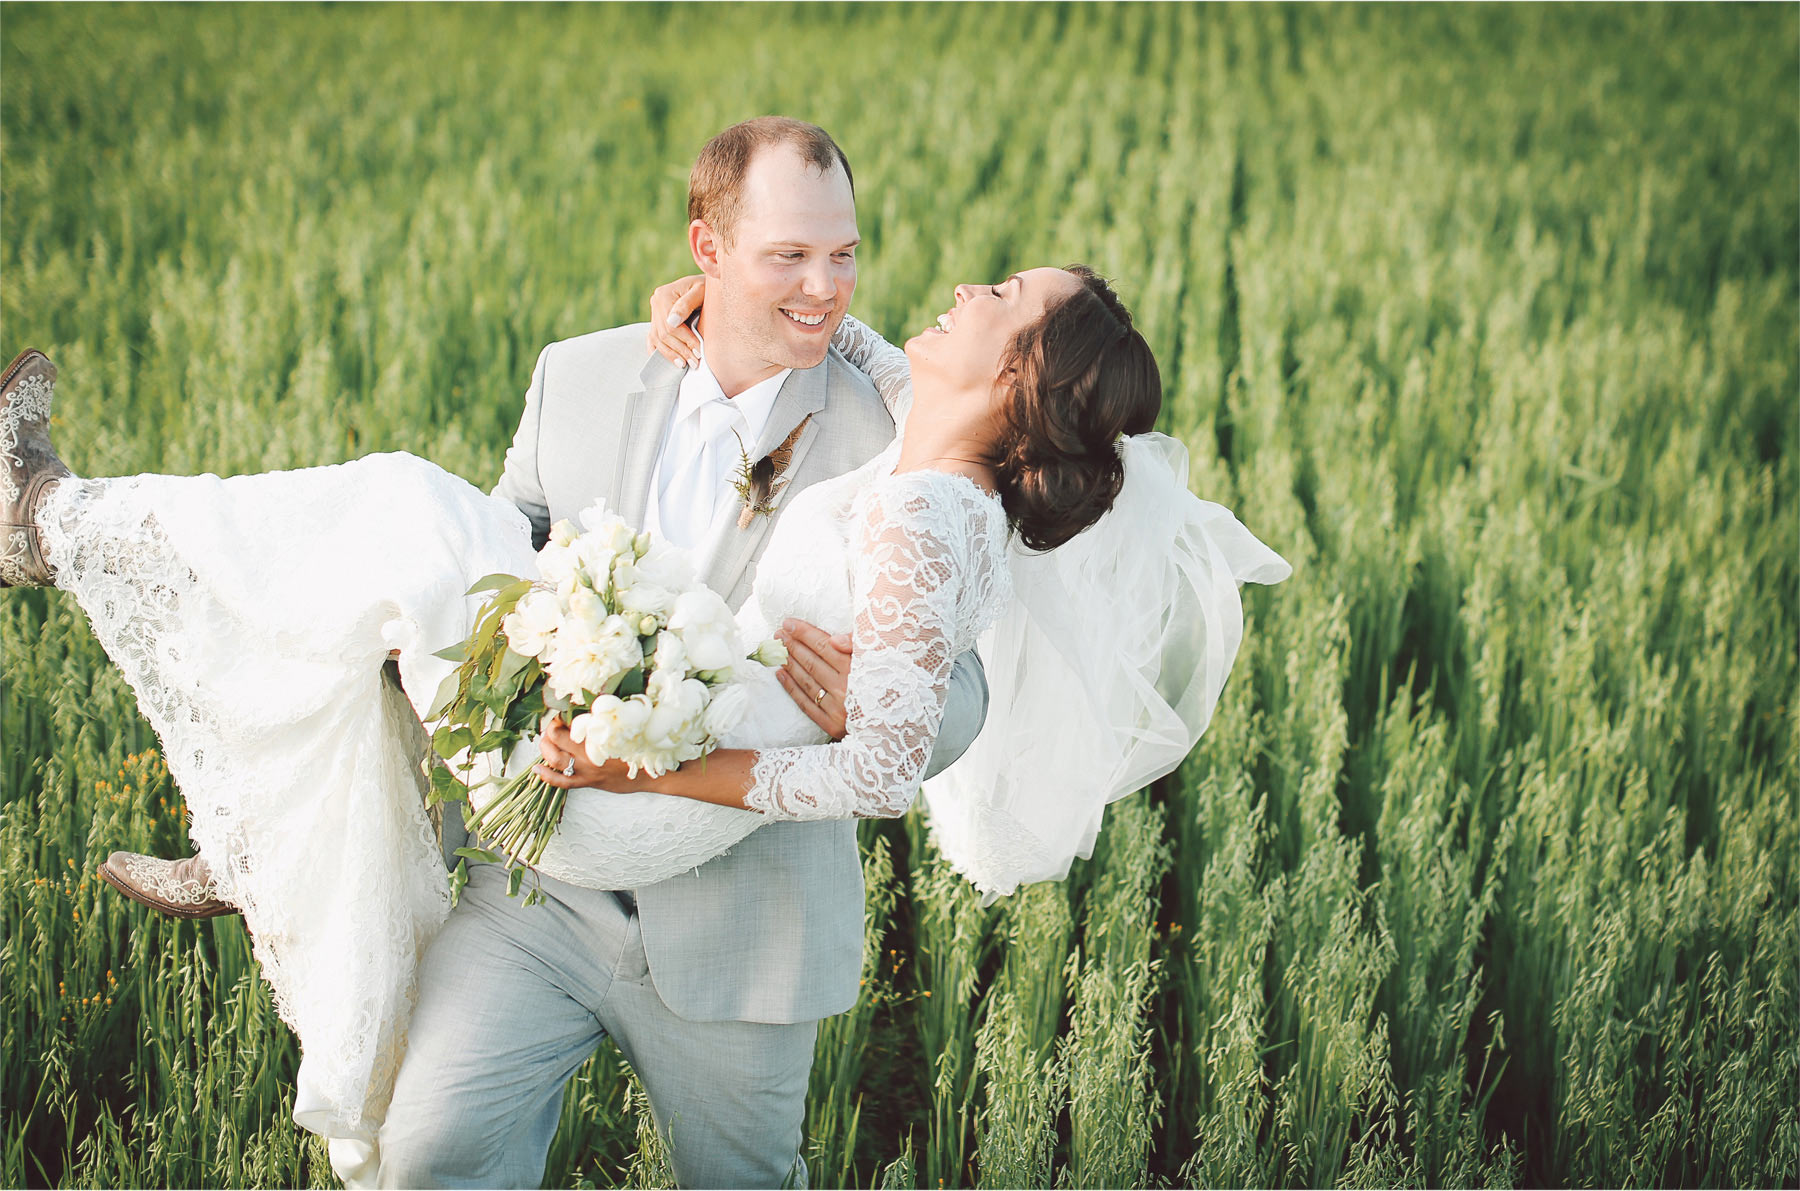 23-South-Haven-Minnesota-Wedding-Photographer-by-Andrew-Vick-Photography-Summer-Tomala-Farm-Field-Bride-Groom-Carry-Flowers-Dress-Vintage-Renee-and-Bobb.jpg